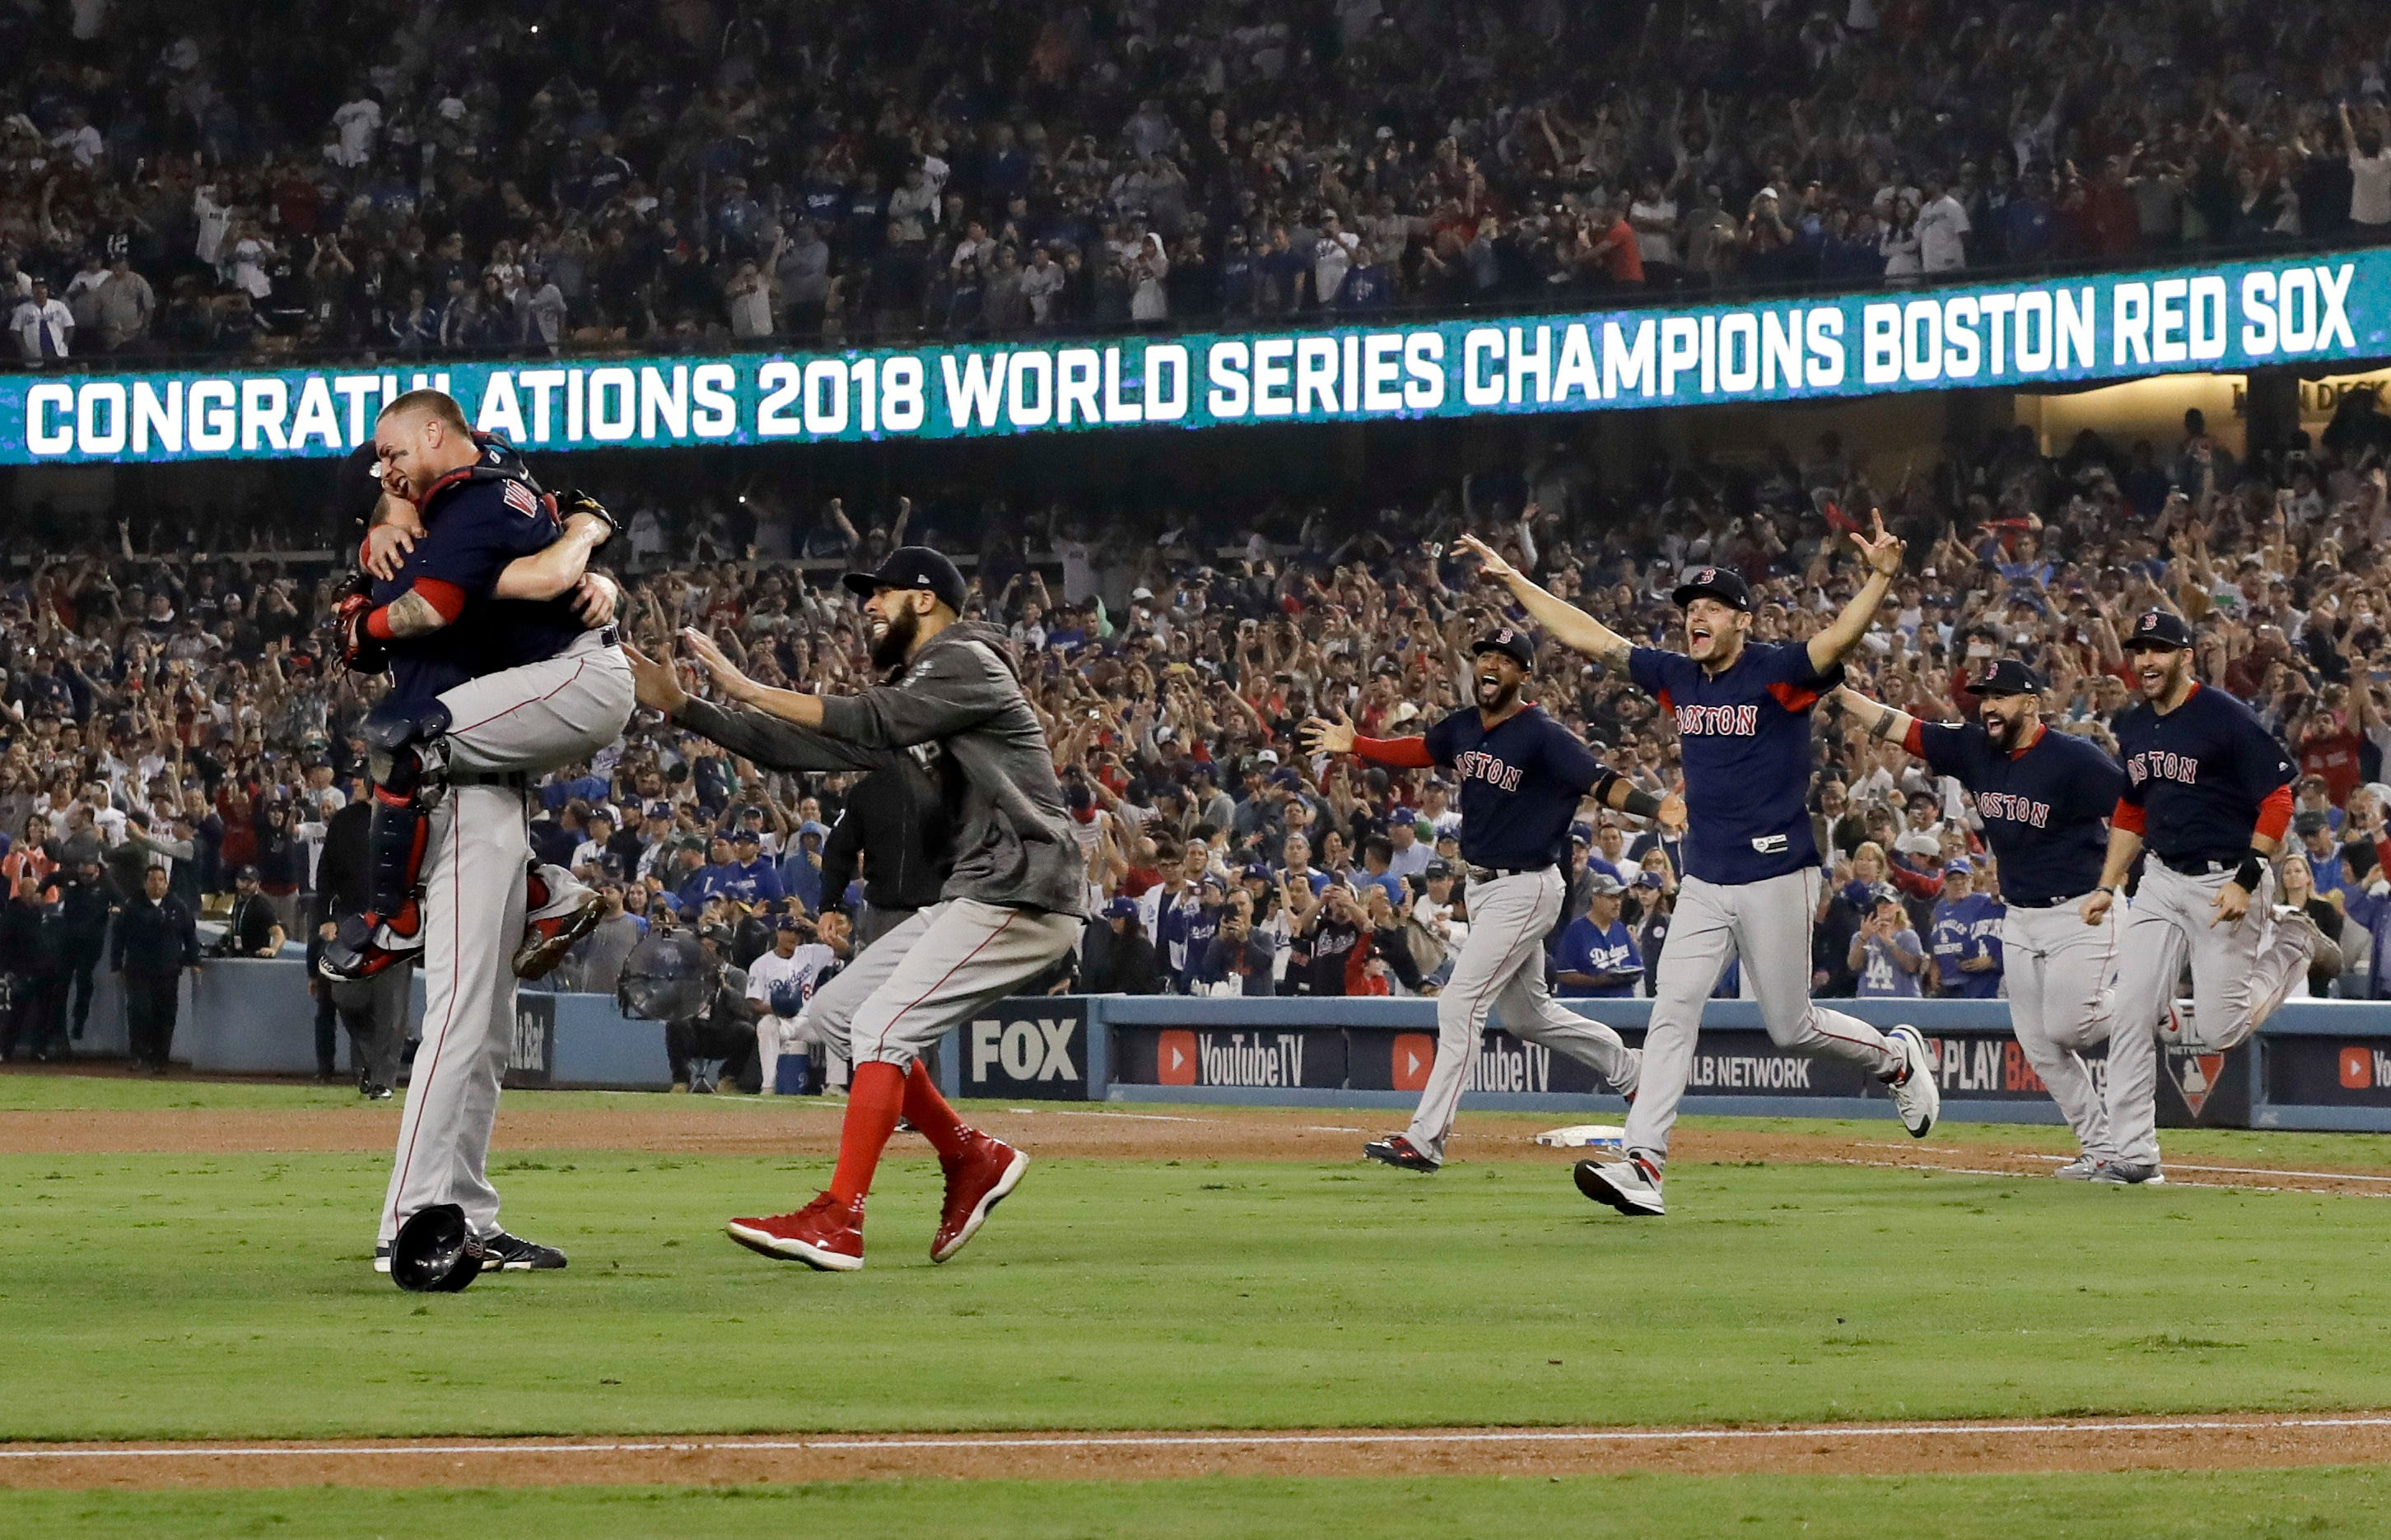 e350082c2 World Series: Ranking the Boston Red Sox's four recent championships